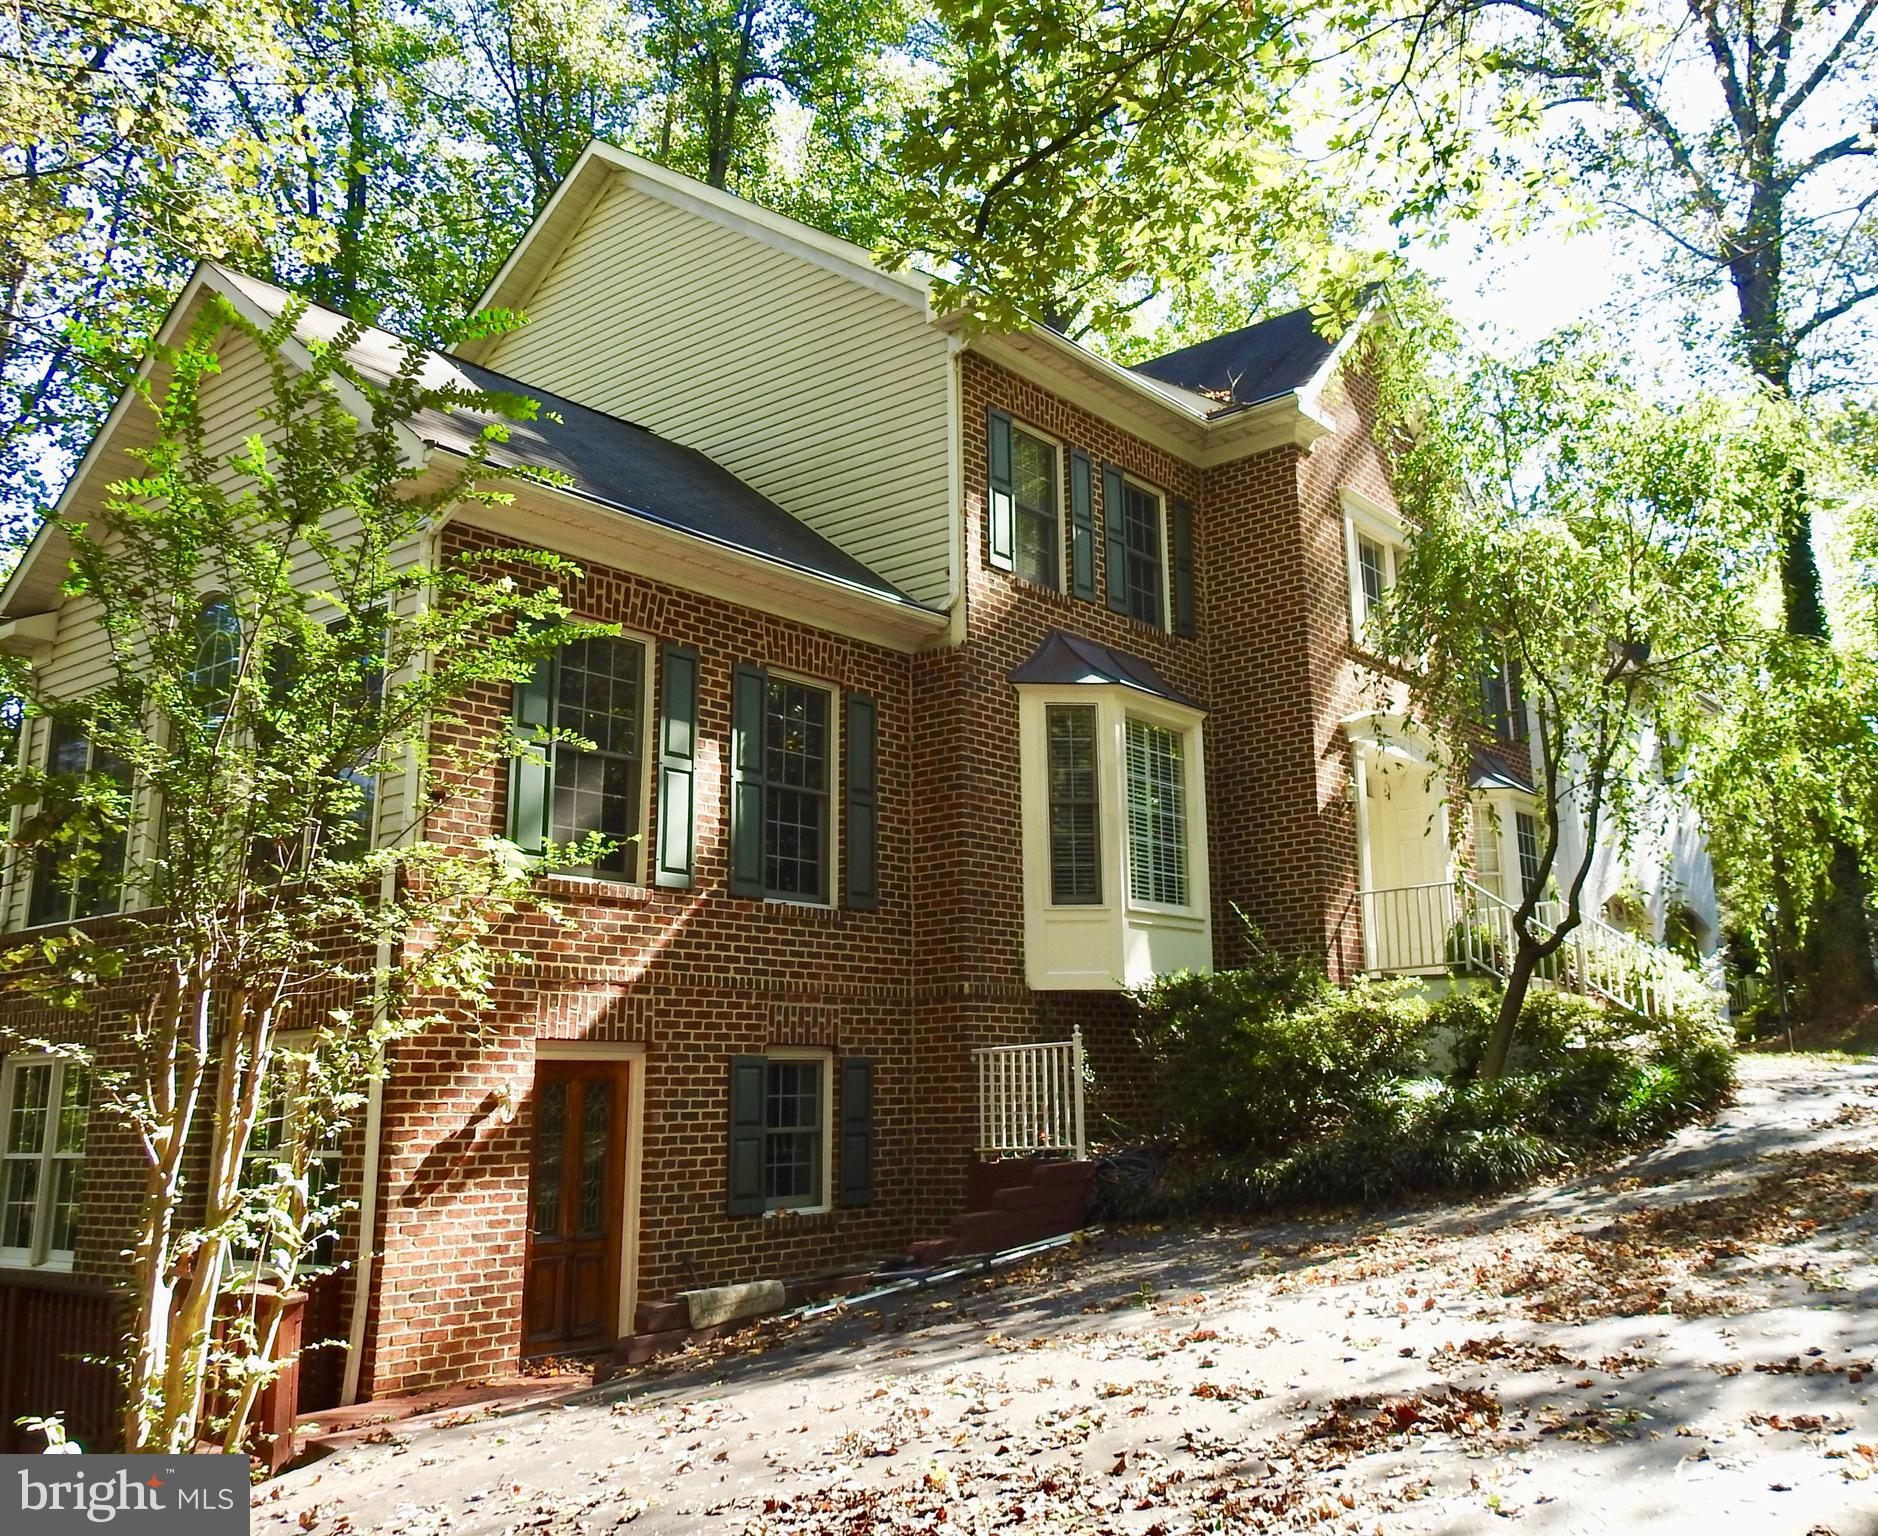 Short term or long term. Furnished or $6,900 unfurnished. One of a kind private estate retreat on 1.14 acres in the heart of McLean and only a 35-minute drive to Amazon HQ in the morning and Afternoon rush hour. The Hawthorne Valley Lodge is a 5 Bedroom, 4.5 Bath 6,500 SqFt home located within walking distance to Metro bus, restaurants, Fitness centers, spas and grocery. Surrounded by 6 acres of private land and 3 acres of parkland, the home is only a 15-20 minute drive to DC. It features extensive outdoor living space and remodeled interior design to meet all your needs. The extensive exterior living space includes a 1,600 SqFt 3 level deck nestled among the trees that overlook the Pimmit Run Creek with natural gas grilling area and portable fire pit. The lower level Flagstone patio and turf area feature a flagstone fireplace, 10 person Hot tub, Golf chipping practice area trampoline and waking steps to Pimmit Run Trail system. The 10 acre Hawthorne Valley is known for fantastic wildlife watching, hiking & Biking trails and fishing in the Pimmit Run. The 3 level interior of the home comprises of the main level with a 2 story entry foyer flanked by a formal living room with Piano sunroom. A full office /library off the foyer and entry into an open space gourmet Kitchen with 6 burner gourmet gas stove, built in Refridge and large island. The kitchen opens to a breakfast nook and family room with a gas stone fireplace and a sliding door opening out to the 3 level deck which includes a Gas grill and fire pit. Off the kitchen and separated by a swinging door is a large formal dining room with seating for 12 with a large window overlooking the Hawthorne Valley. The upper level has 4 large bedrooms and a sitting room off the master bedroom (which could be 5th bedroom). The 3 large upper bedrooms have remodeled Granite bathrooms and the Master suite was completely remodeled in 2018. The remodeled master suite includes a marble Master bath with separate shower and Jacuzzi t